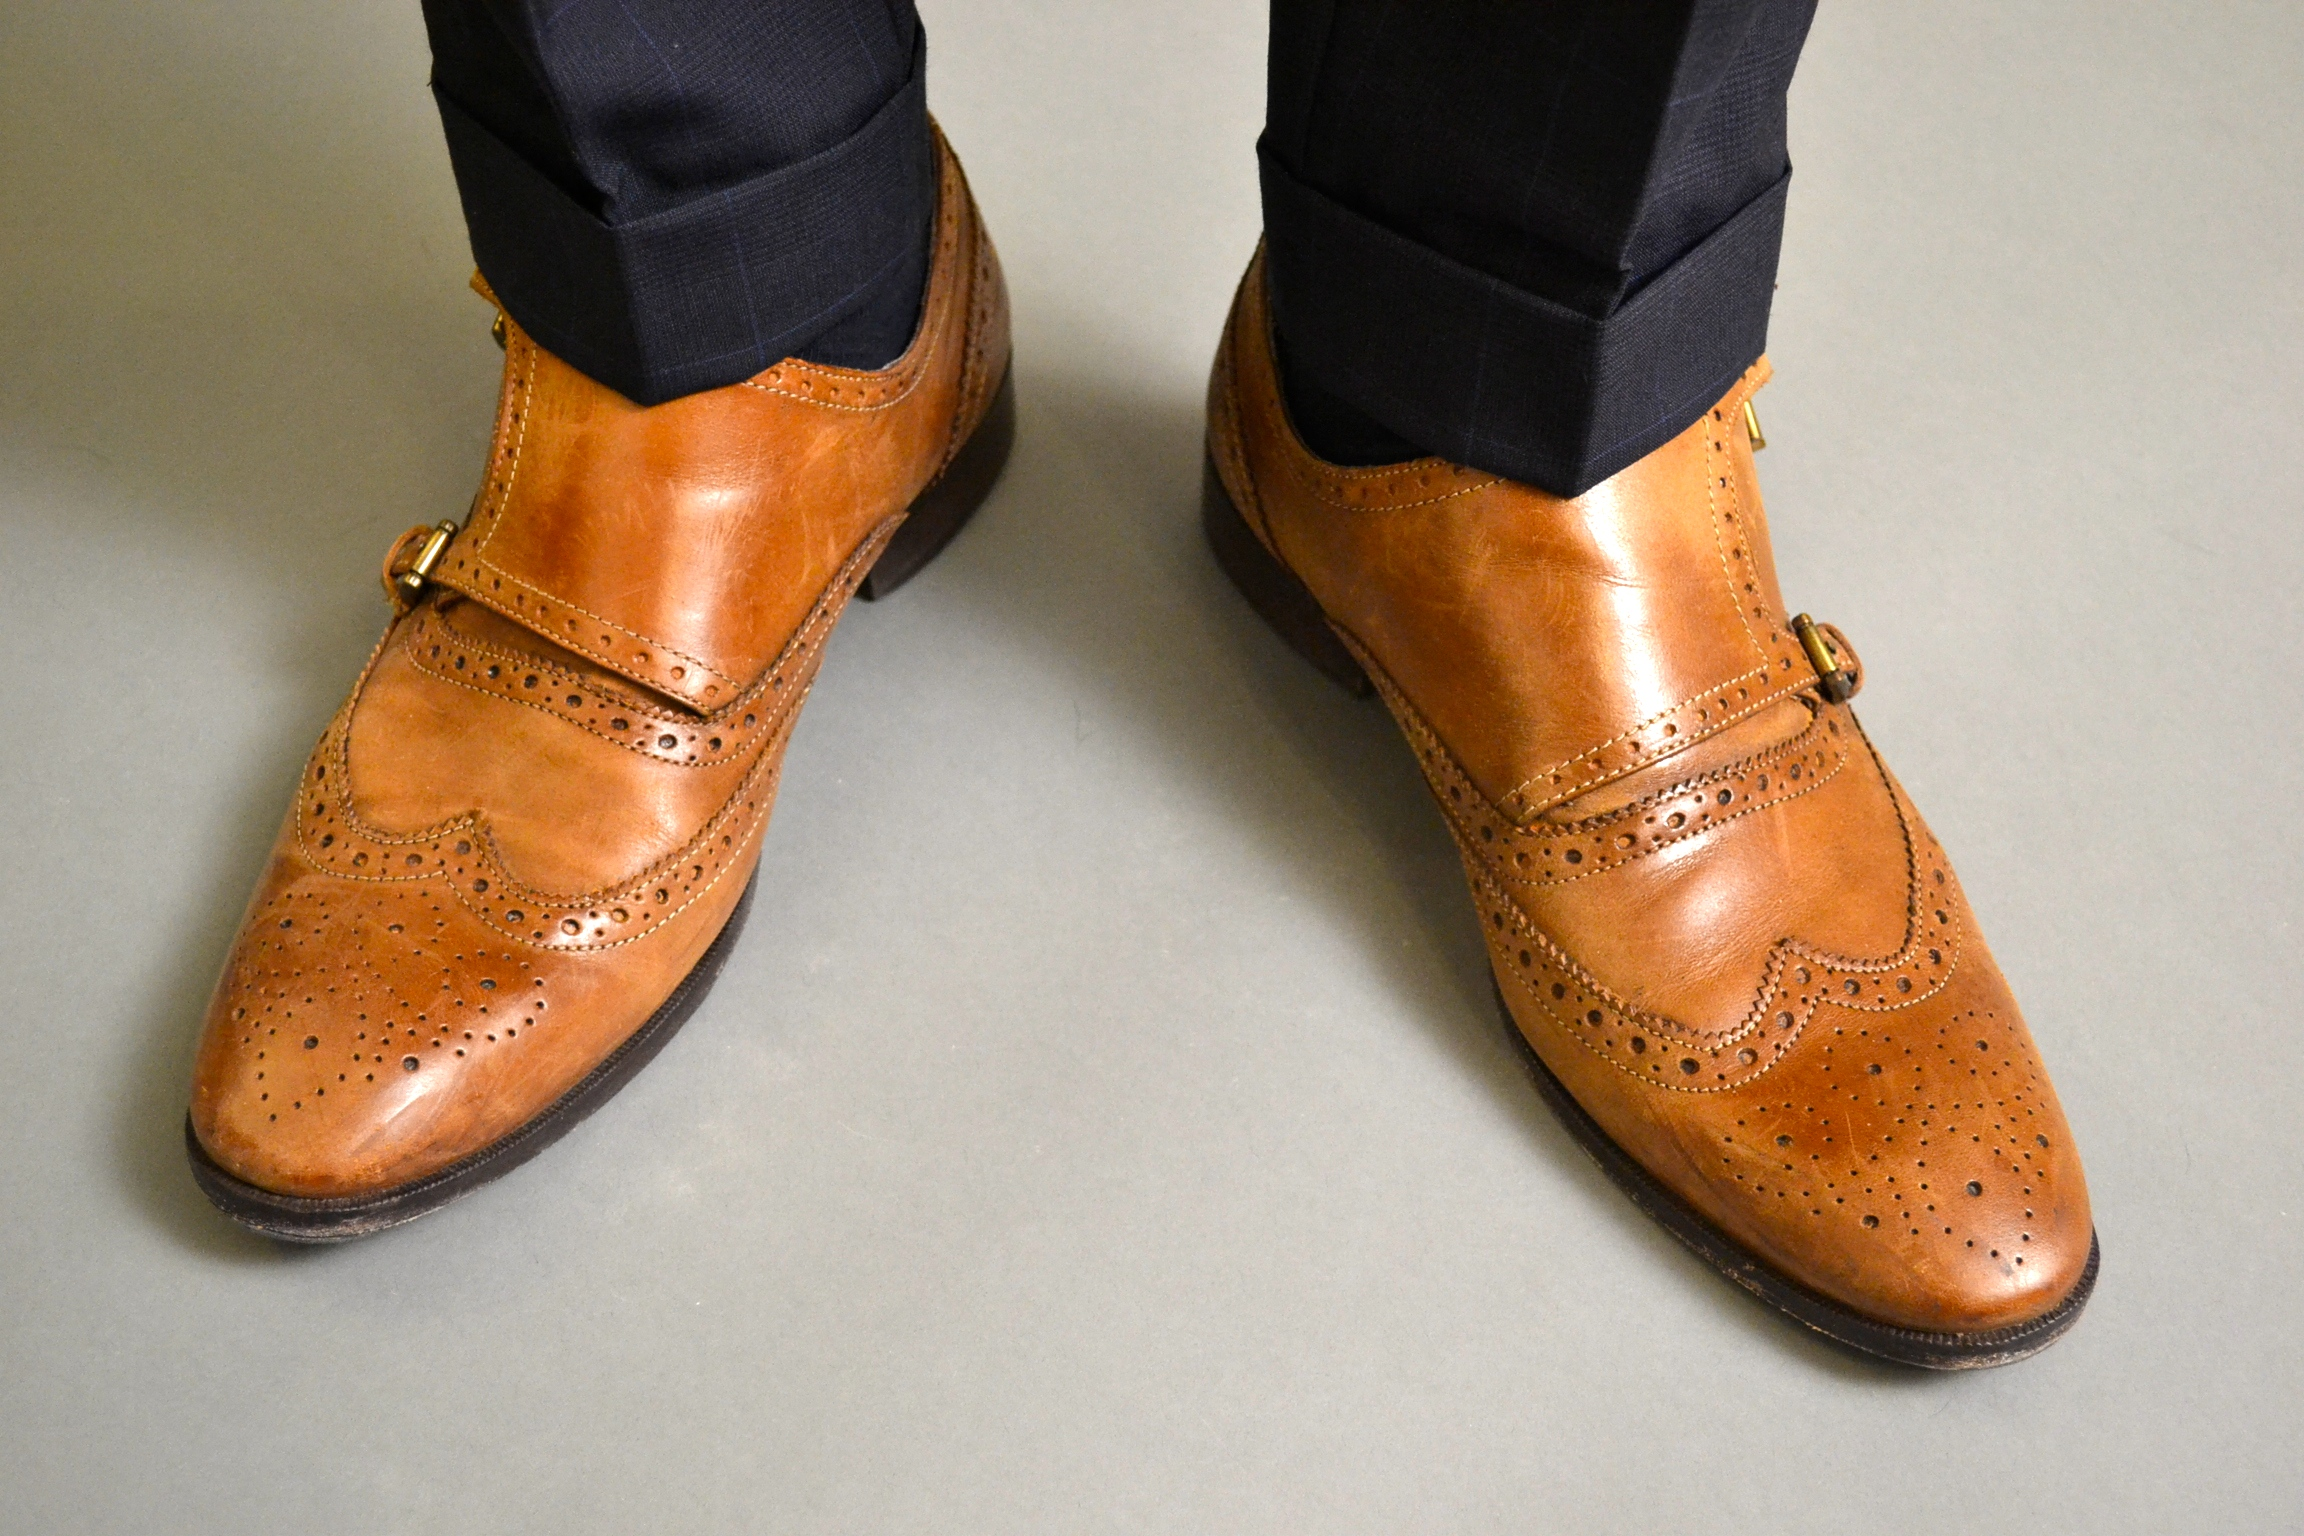 Giorgio Brutini Double Monk Strap Shoes on Men's Style Pro